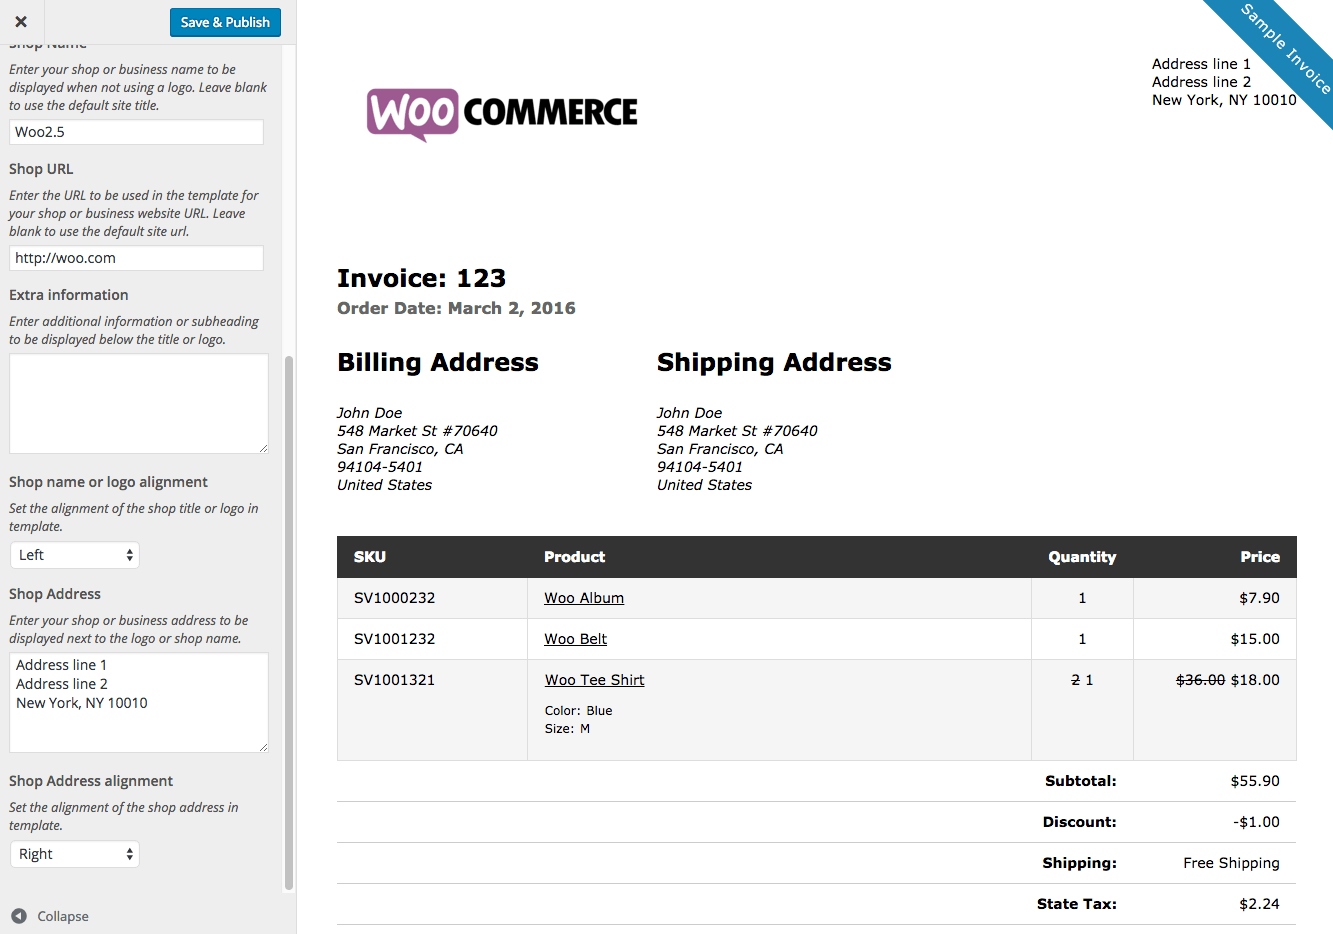 Reliefworkersus  Unusual Woocommerce Print Invoices Amp Packing Lists  Woocommerce Docs With Magnificent Woocommerce Print Invoices  Packing Lists Customizer With Beautiful Online Invoice Creation Also Template For Invoice For Services Rendered In Addition Free Online Printable Invoices And Invoice Template Nz As Well As Proforma Of Invoice Additionally Commercial Invoice Packing List From Docswoocommercecom With Reliefworkersus  Magnificent Woocommerce Print Invoices Amp Packing Lists  Woocommerce Docs With Beautiful Woocommerce Print Invoices  Packing Lists Customizer And Unusual Online Invoice Creation Also Template For Invoice For Services Rendered In Addition Free Online Printable Invoices From Docswoocommercecom